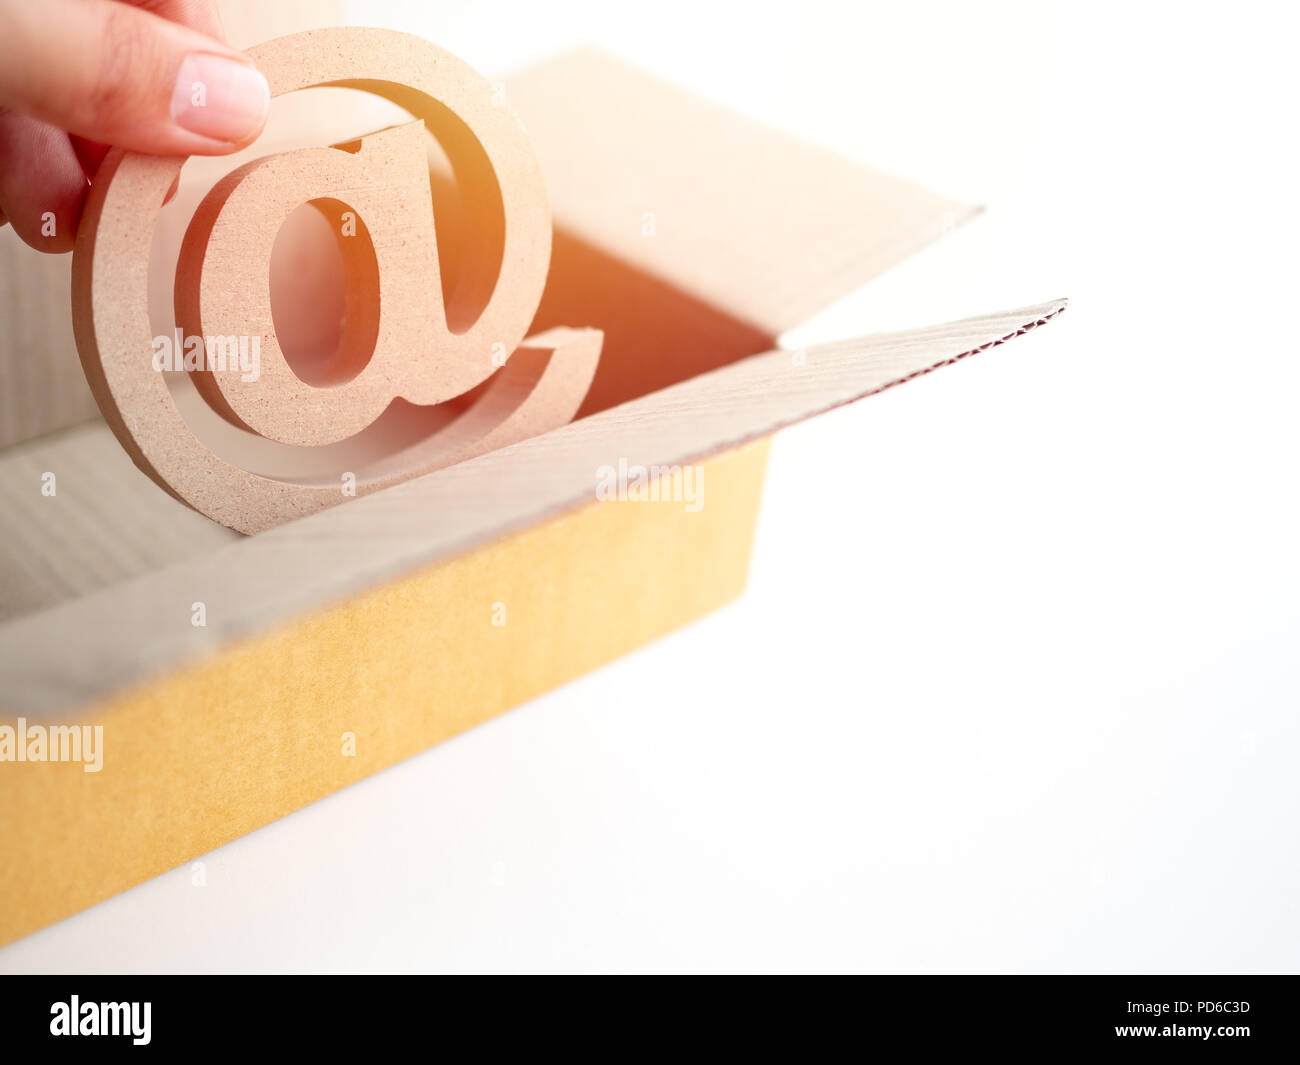 Hand picking wooden E-mail address symbol from the brown paper box, arroba icon in the cardboard carton box isolated on white background with copy spa - Stock Image